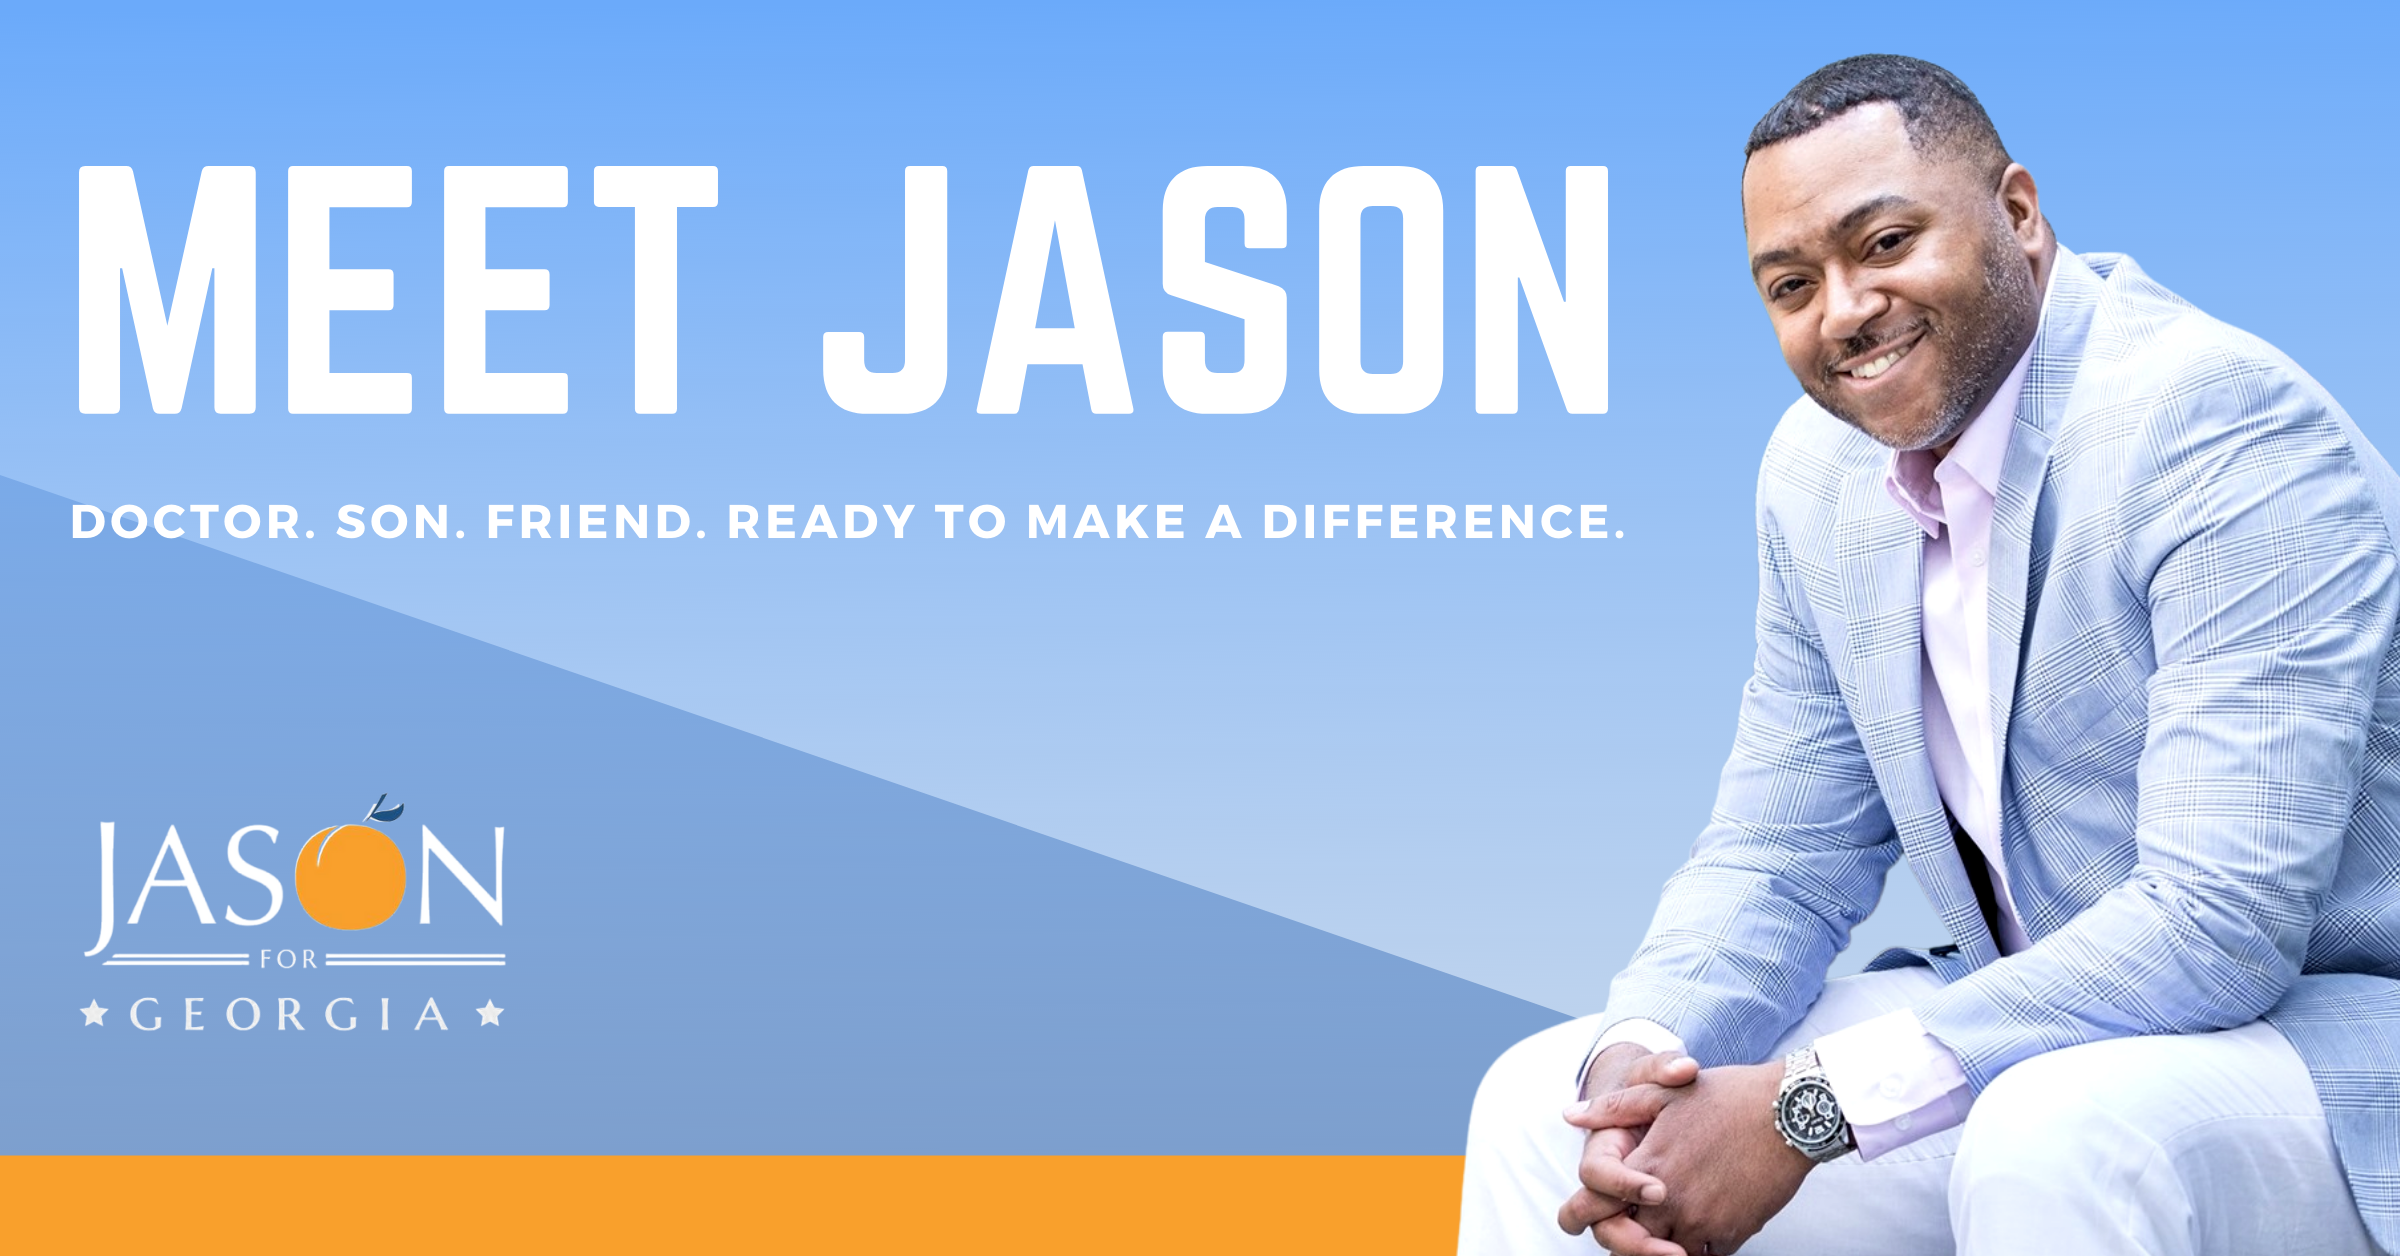 meet jason. doctor. son. friend. ready to make a difference.